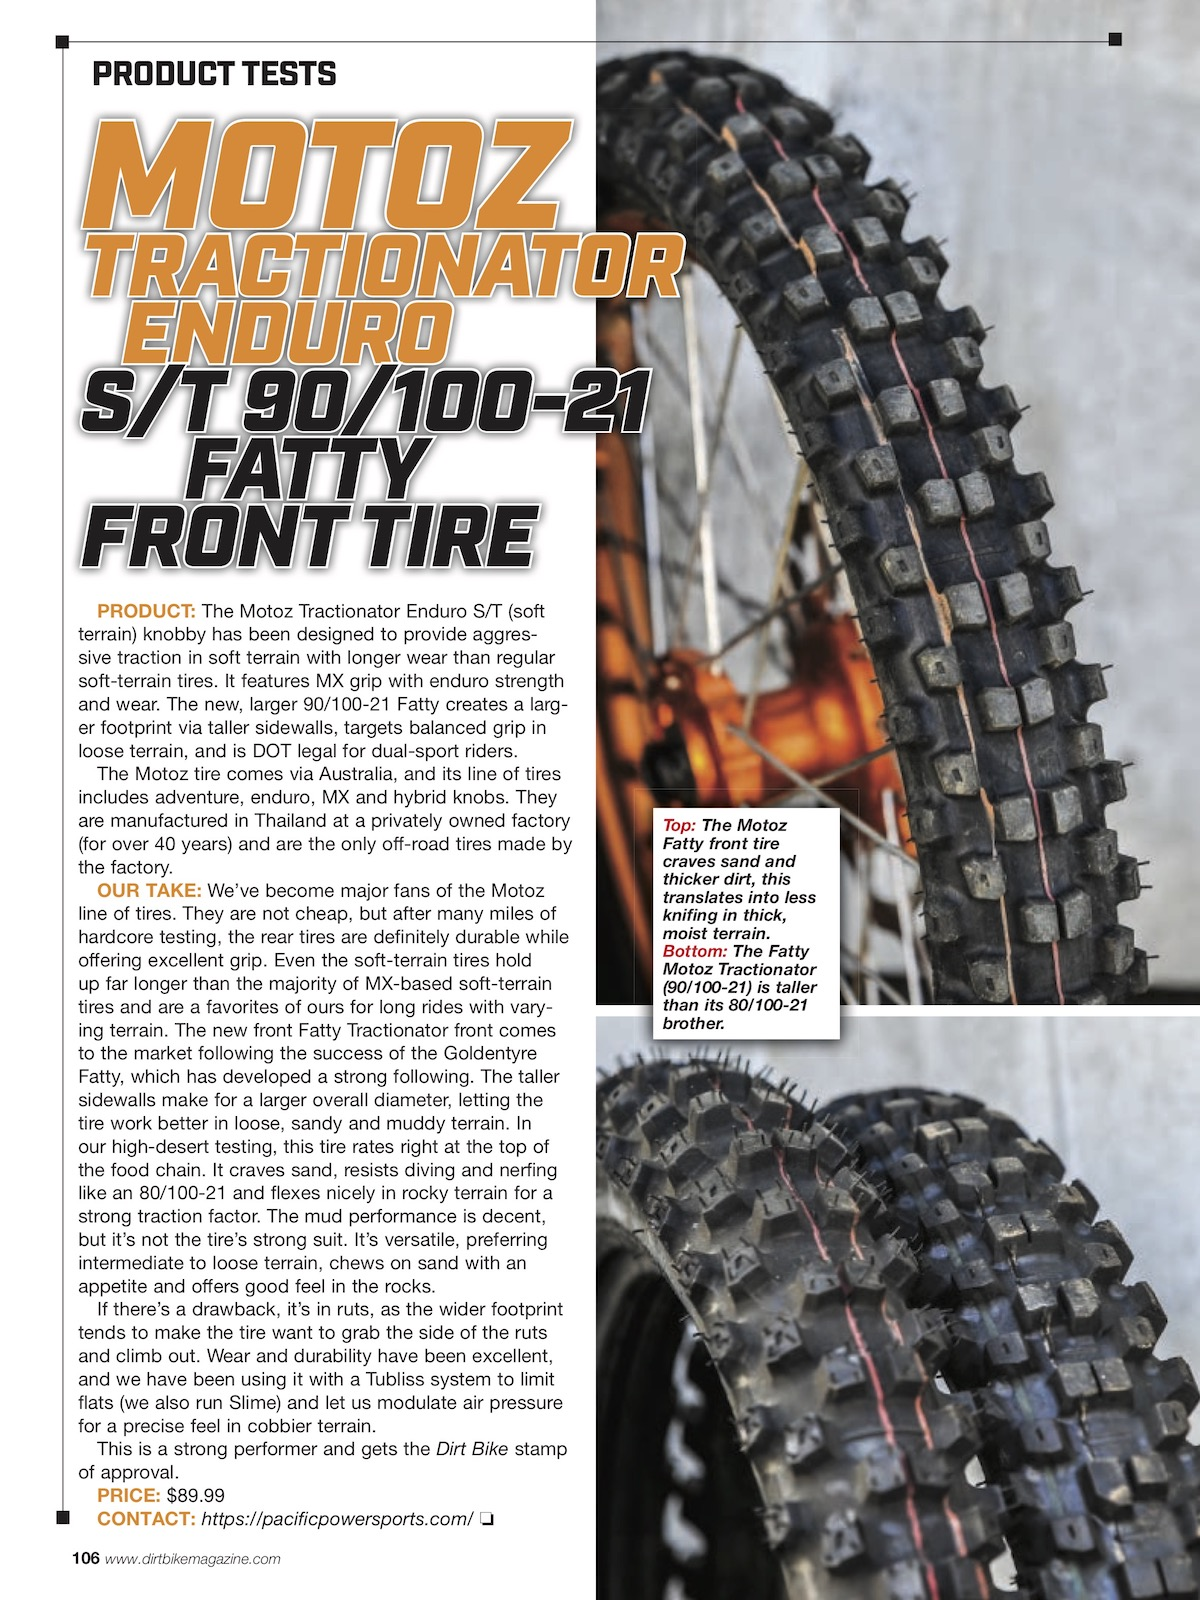 MOTOZ TRACTIONATOR ENDURO S/T 90/100-21 FATTY FRONT TIRE – Review By DirtBikeMagazine